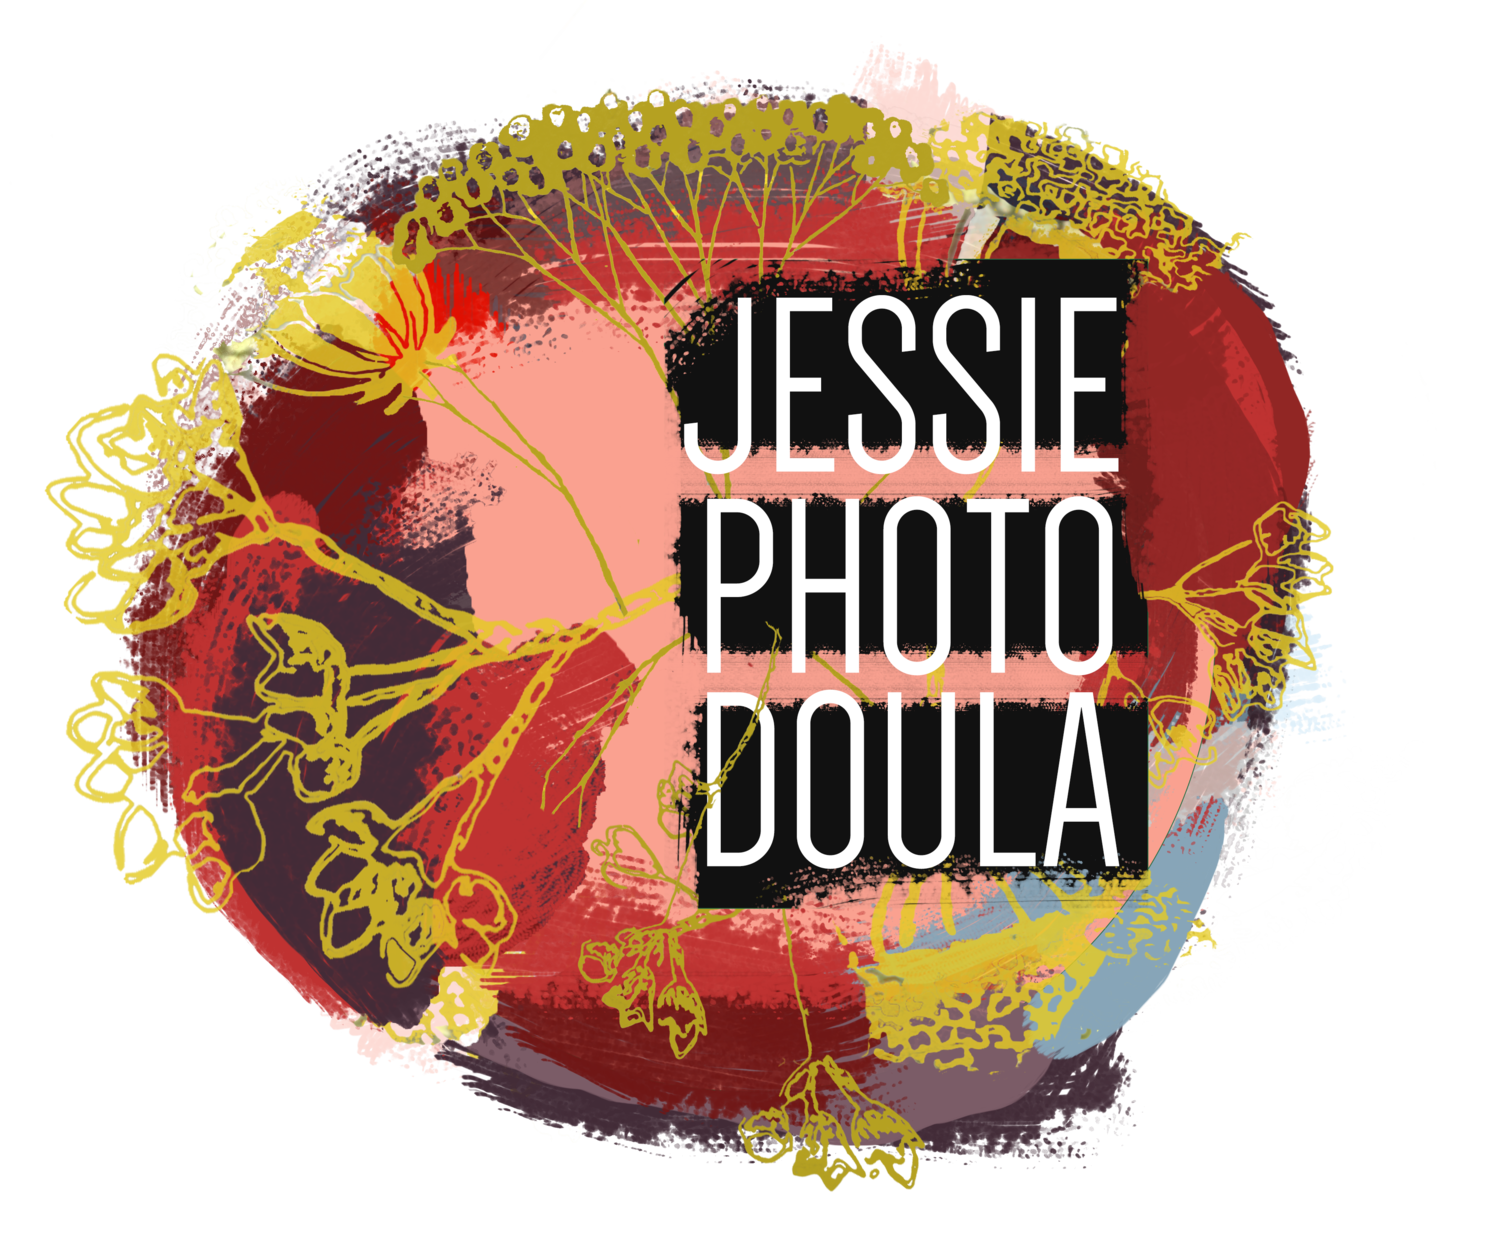 Portland Birth Photographer Jessie Photo Doula